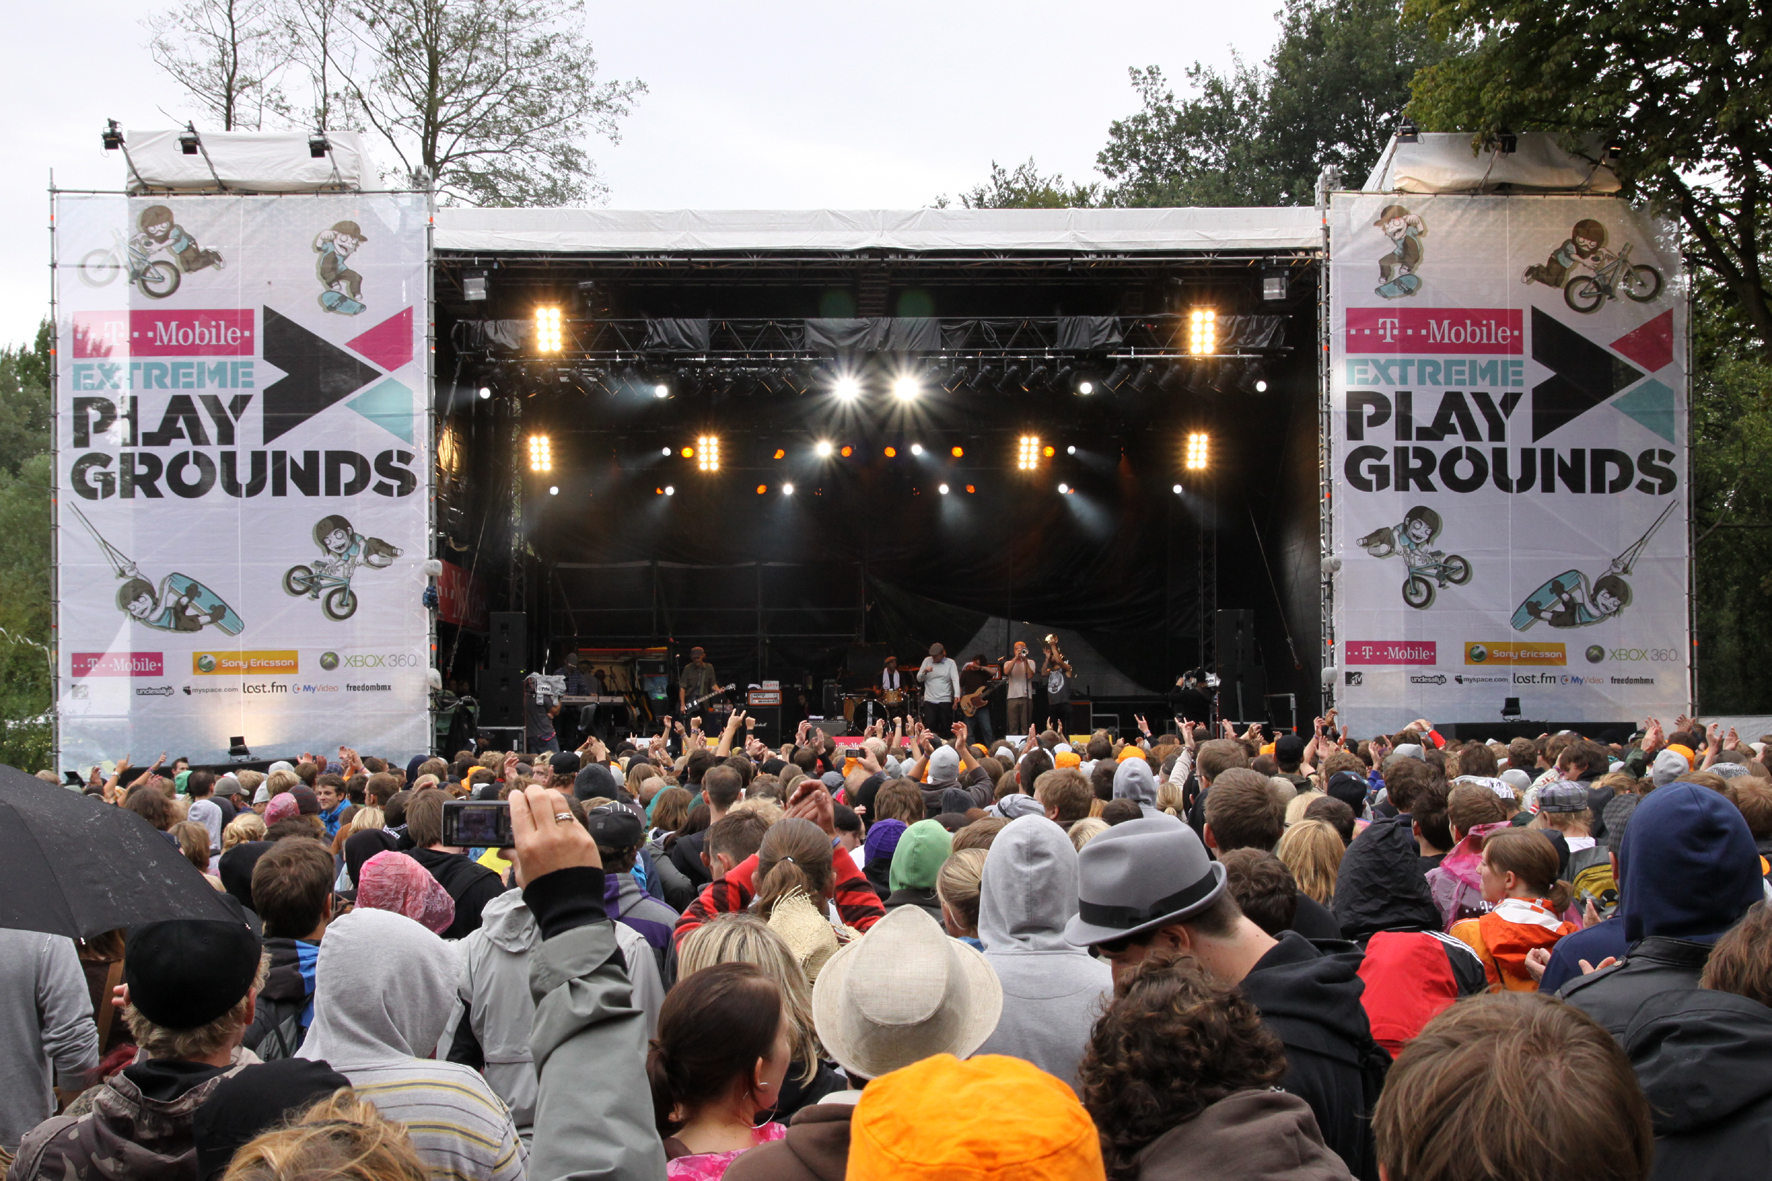 T-Mobile Extreme Playgrounds 2009.  Foto: Veranstalter